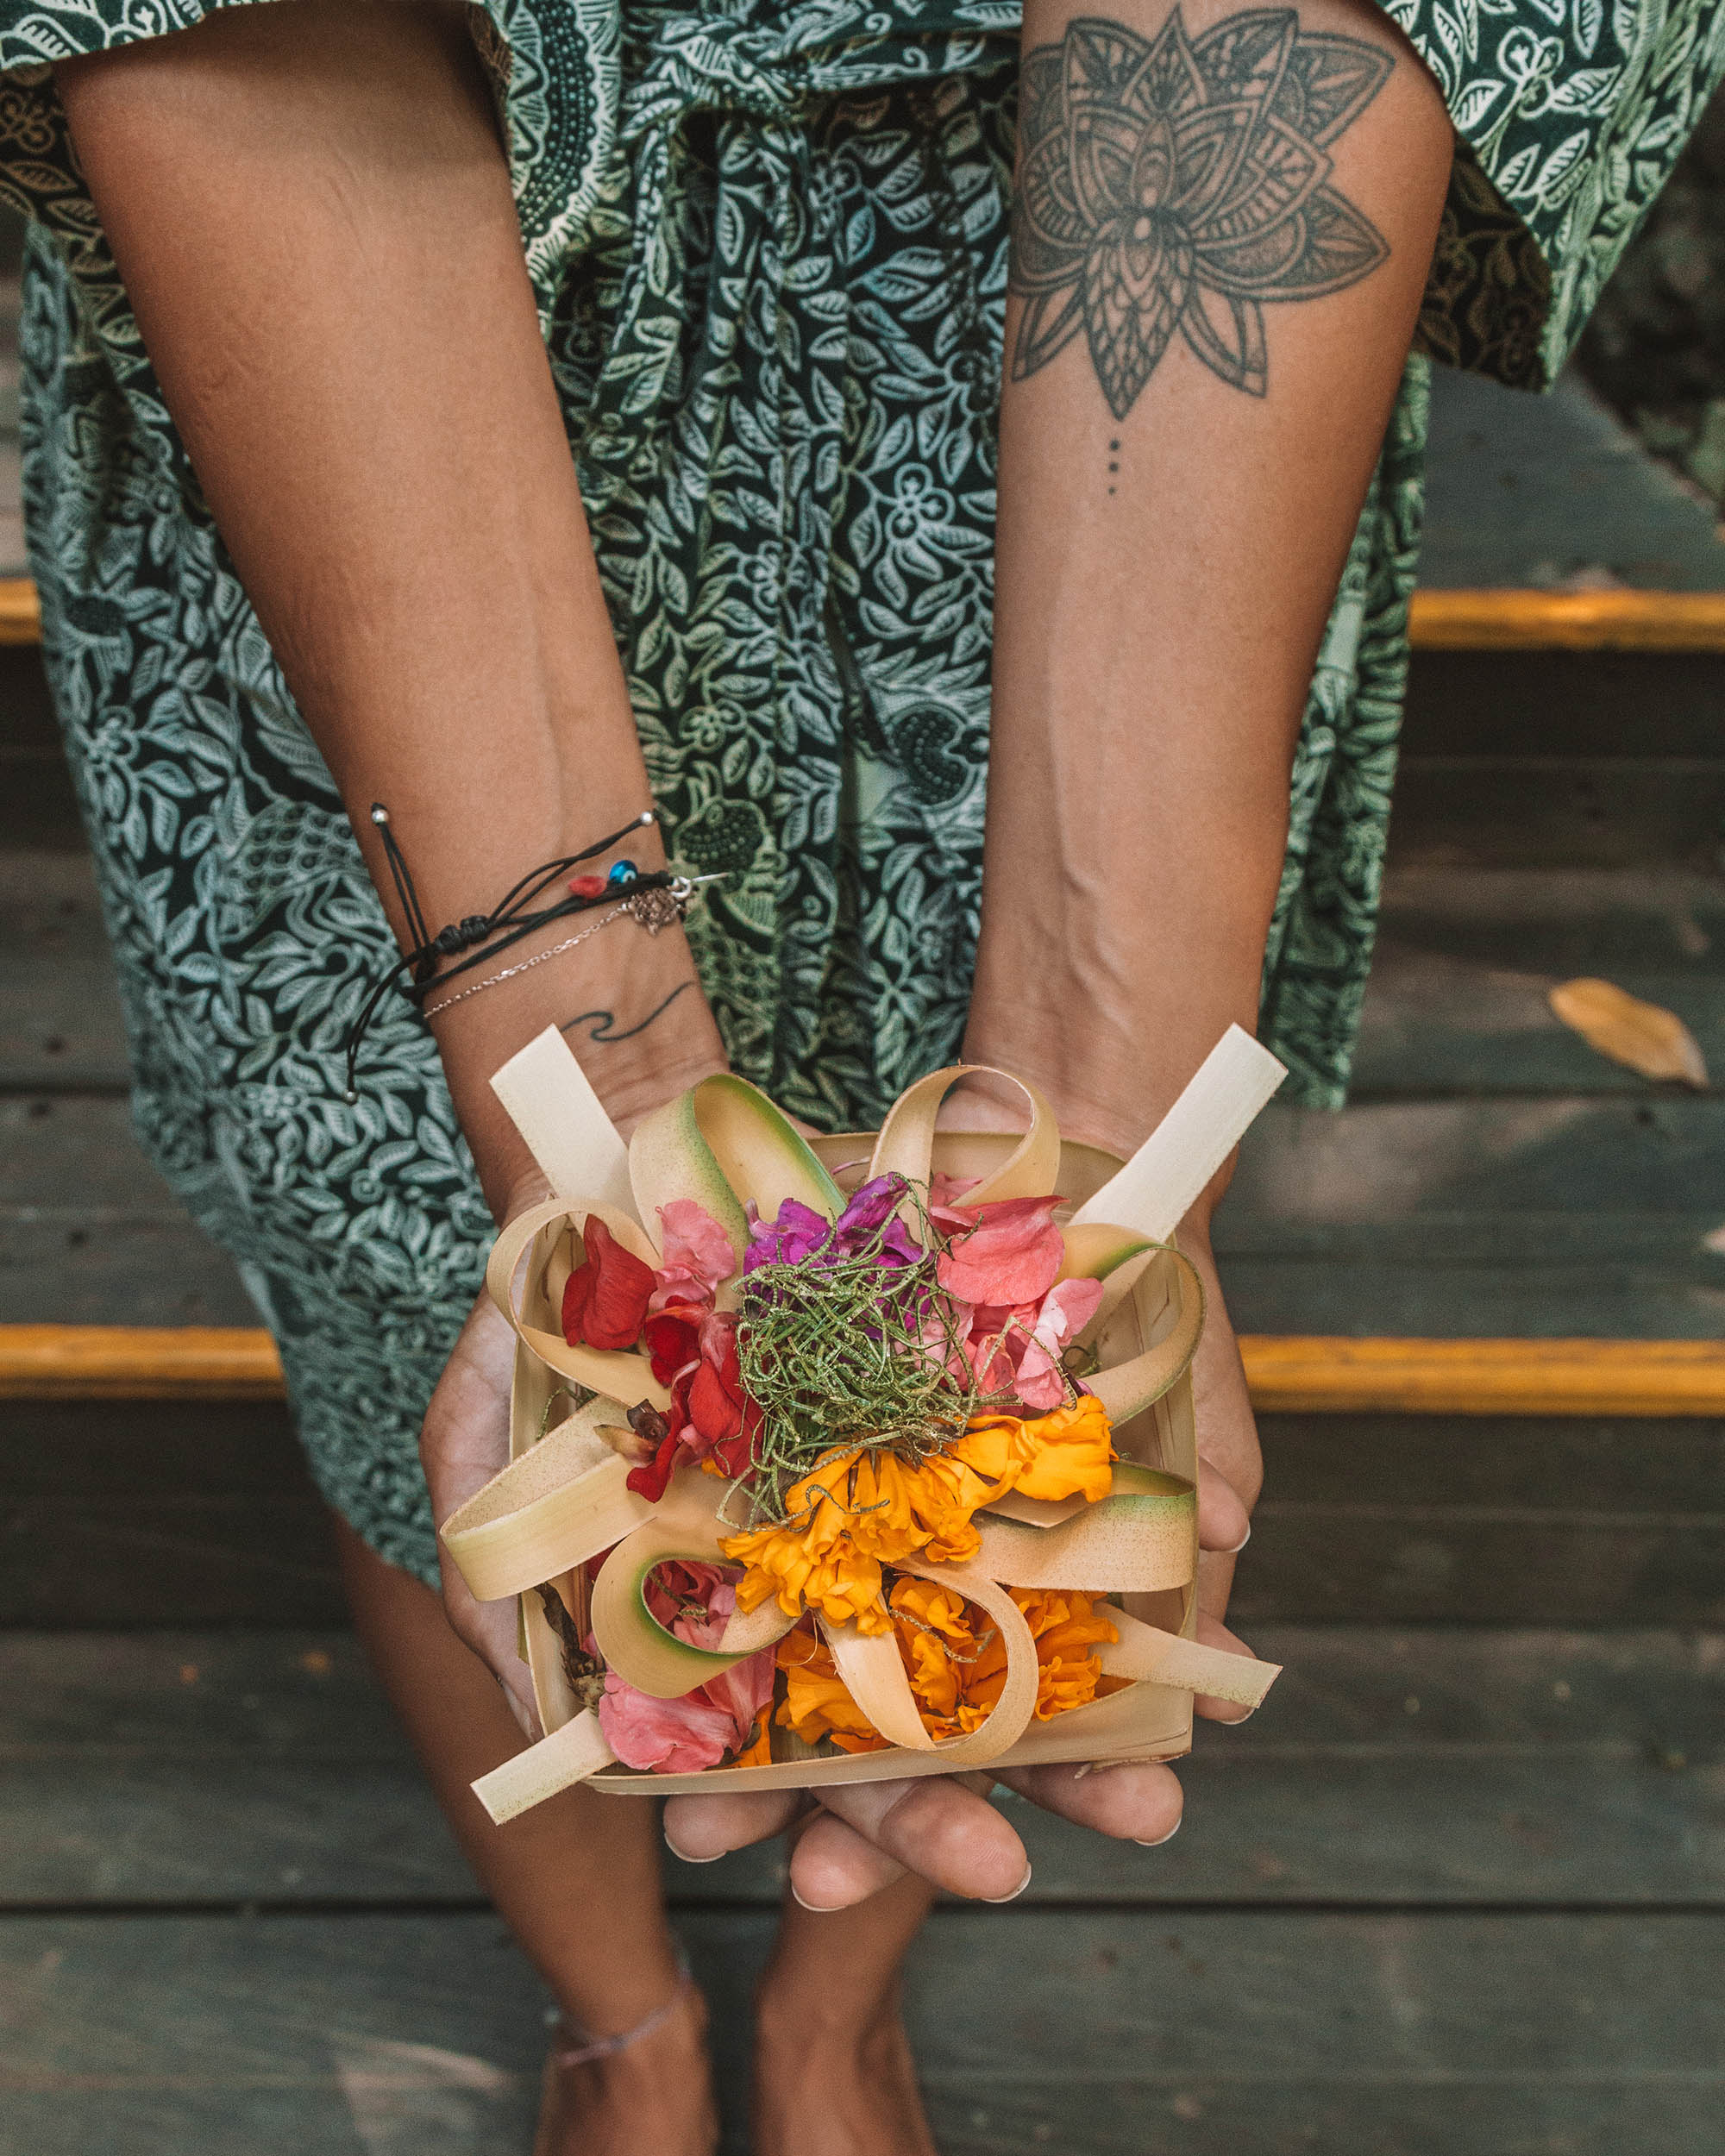 bali indonesia asia freeoversea hotels beautiful places flowers offerings photographs